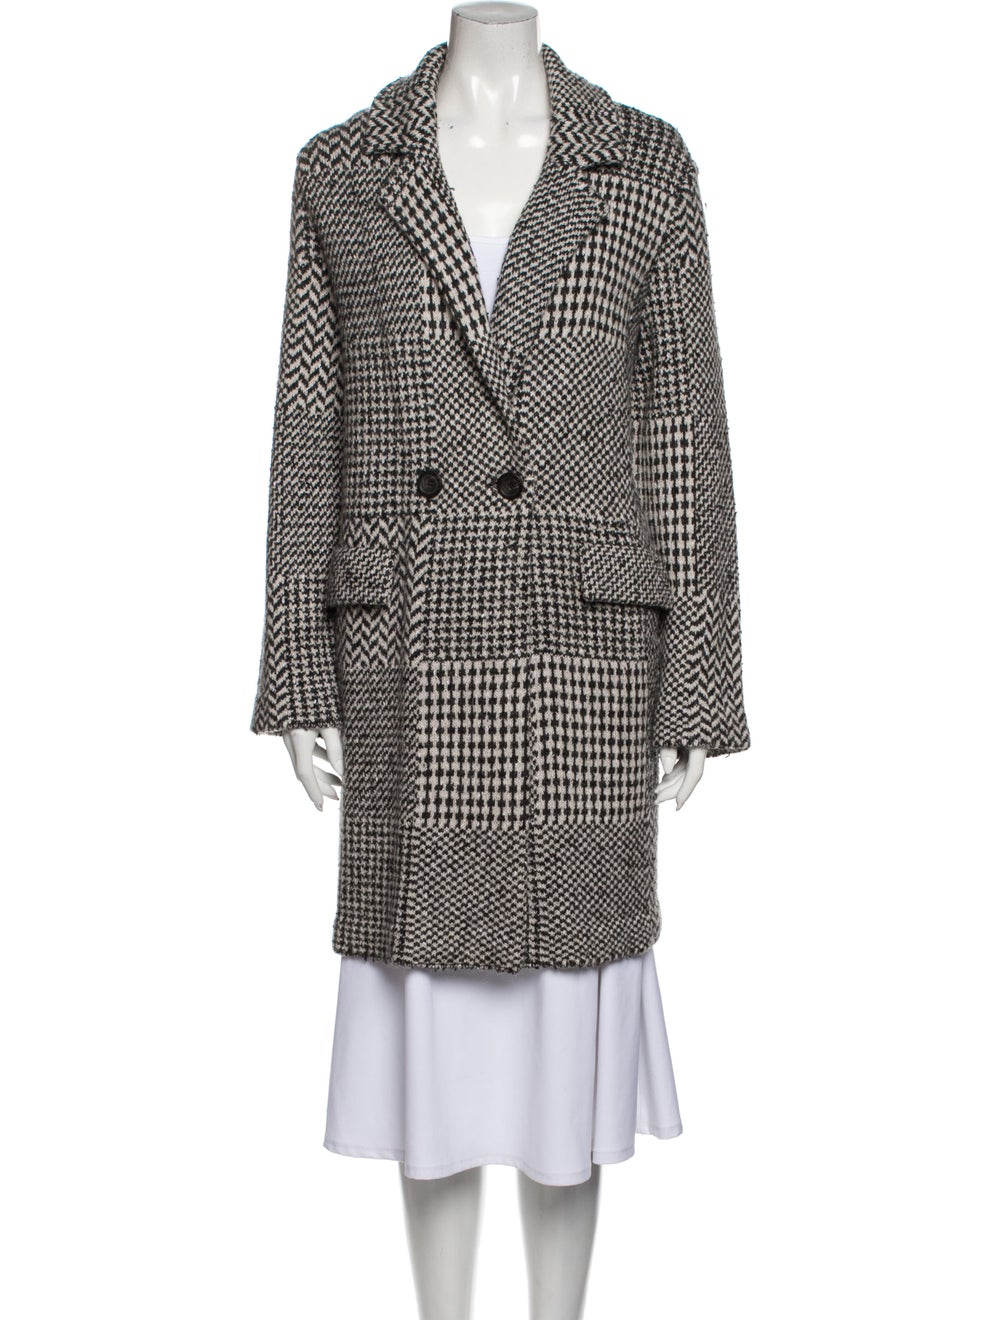 Anne Claire Tweed Pattern Peacoat Grey - image 1